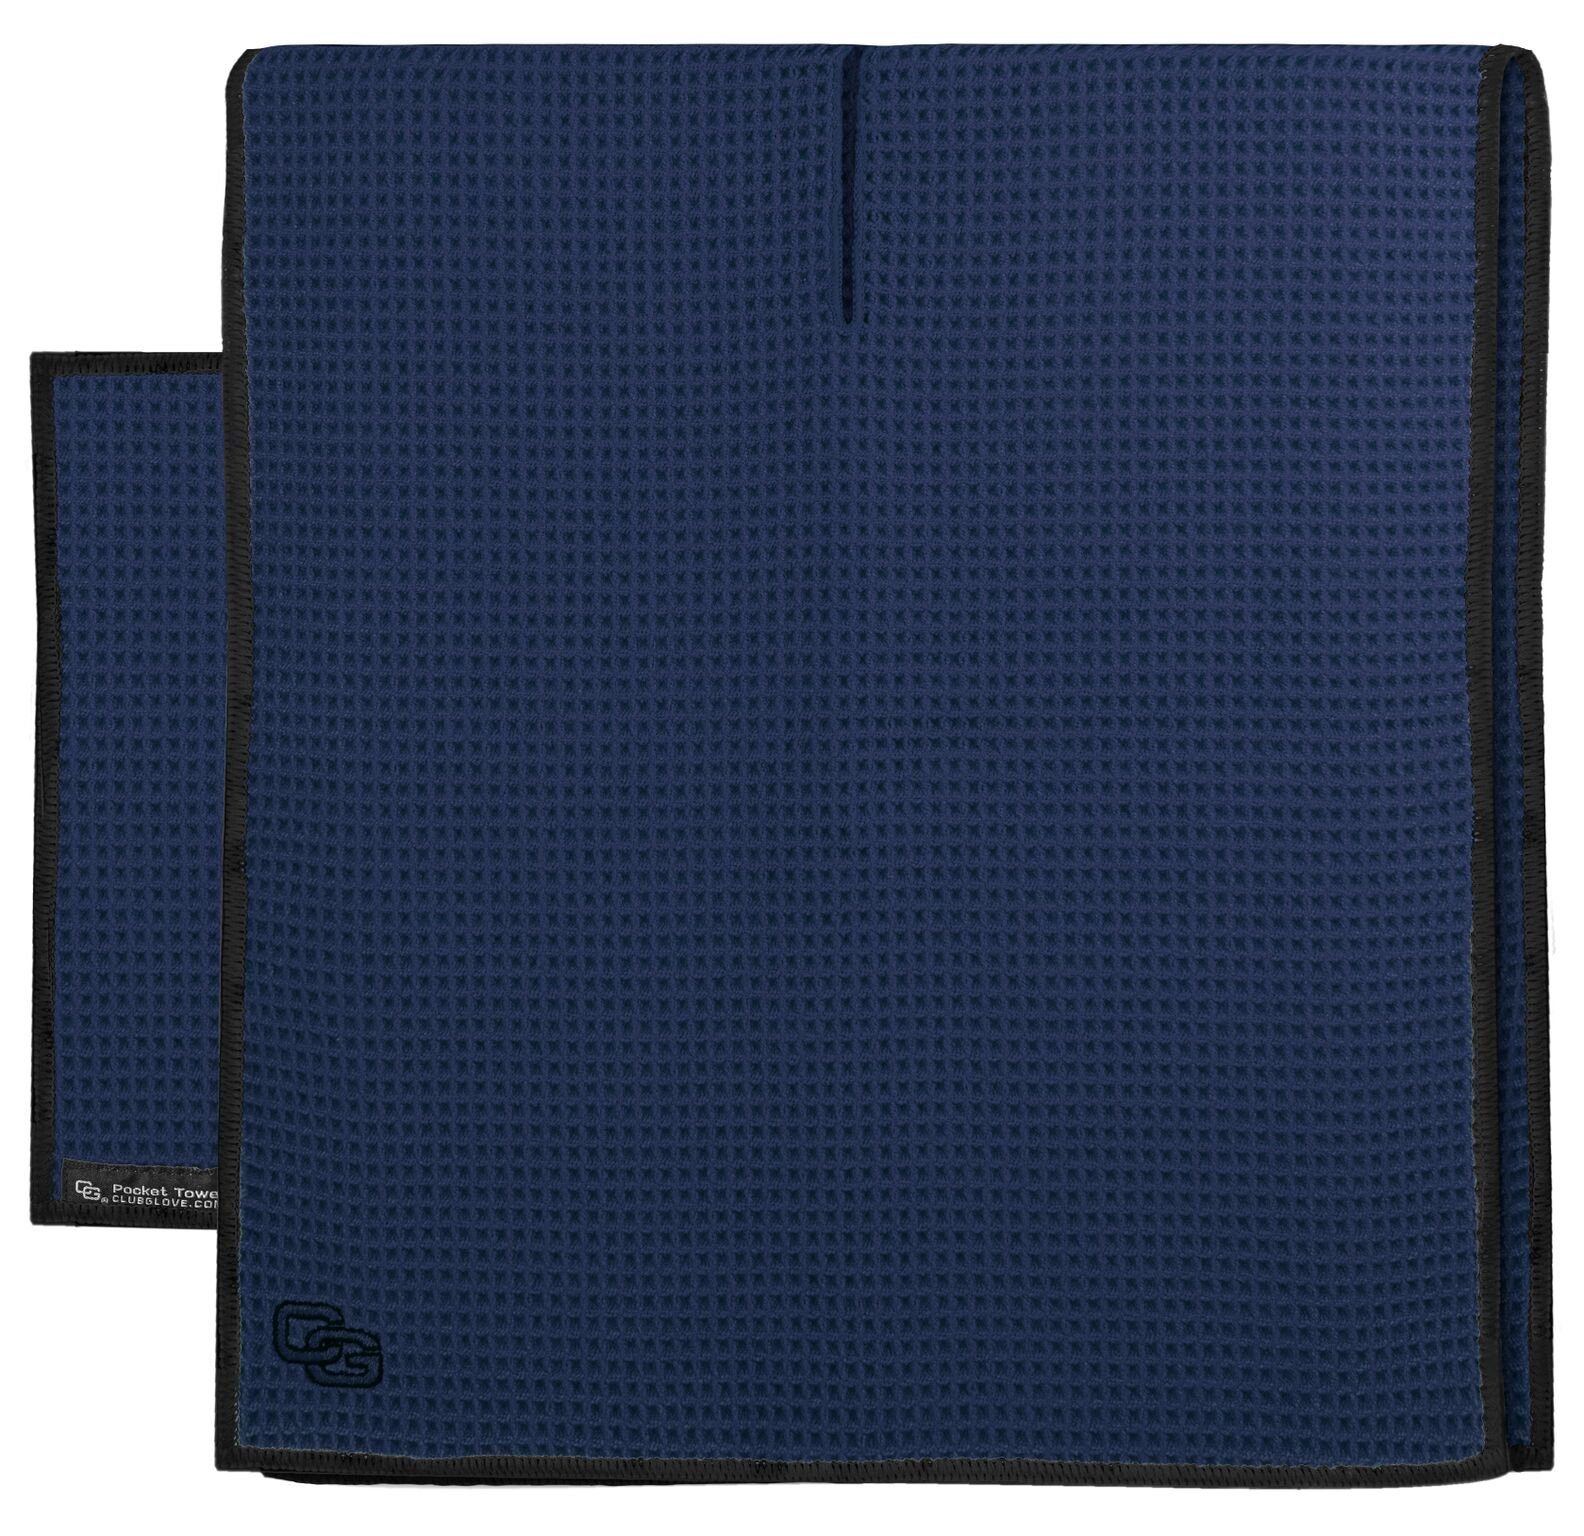 Club Glove Golf Microfiber Caddy and Pocket Towel Set (Navy)